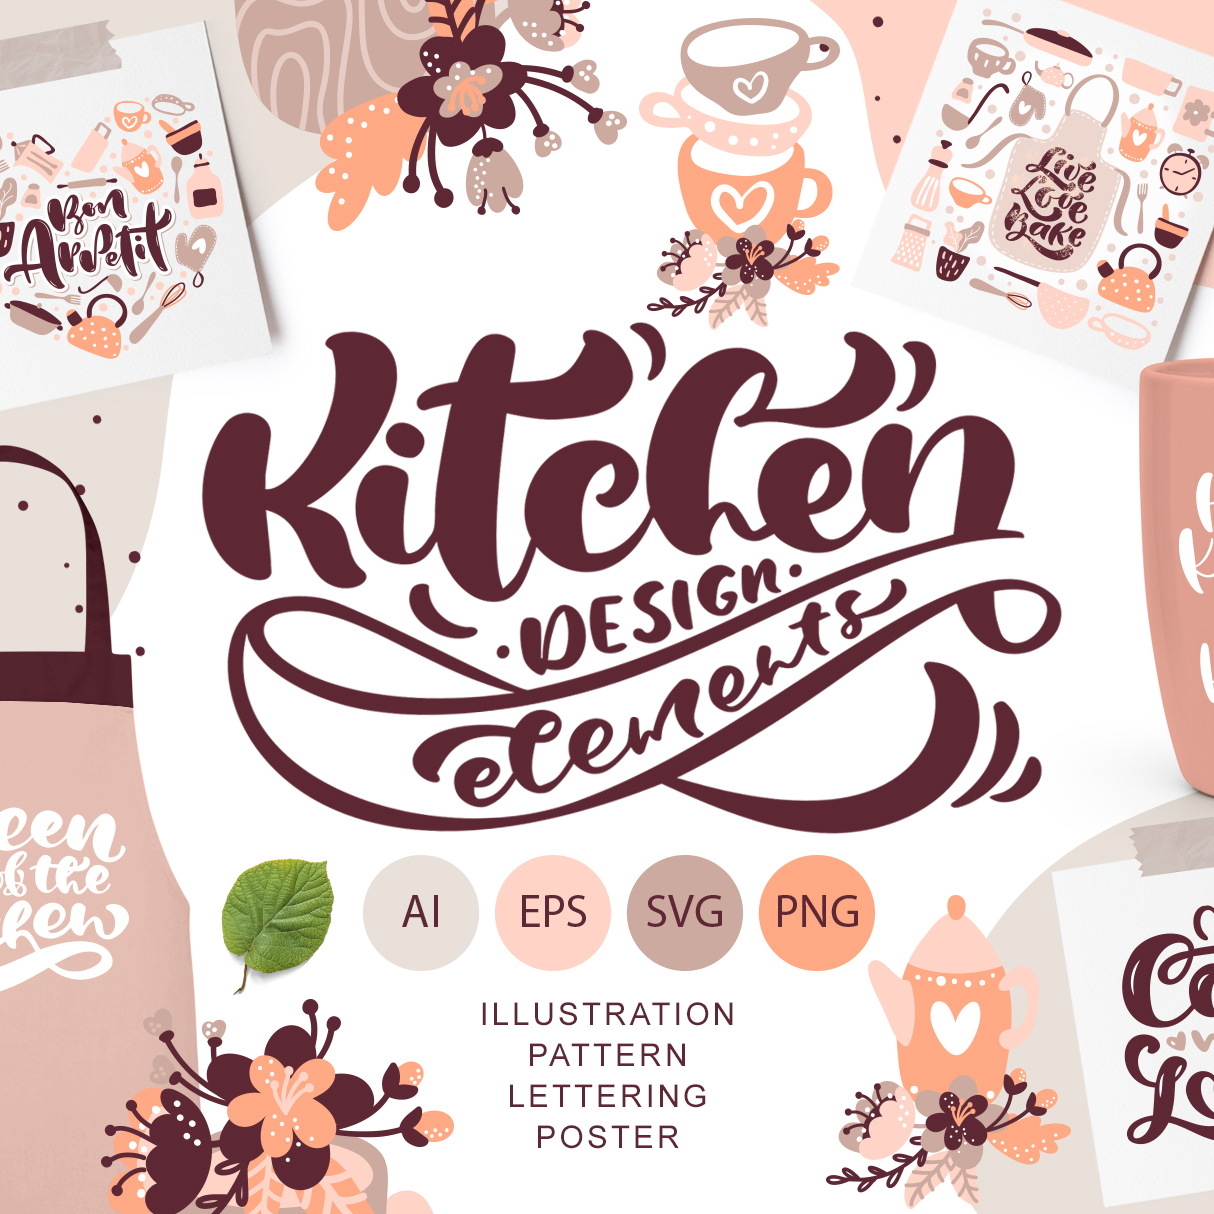 138 Vintage Abstract flowers SVG - kitchen